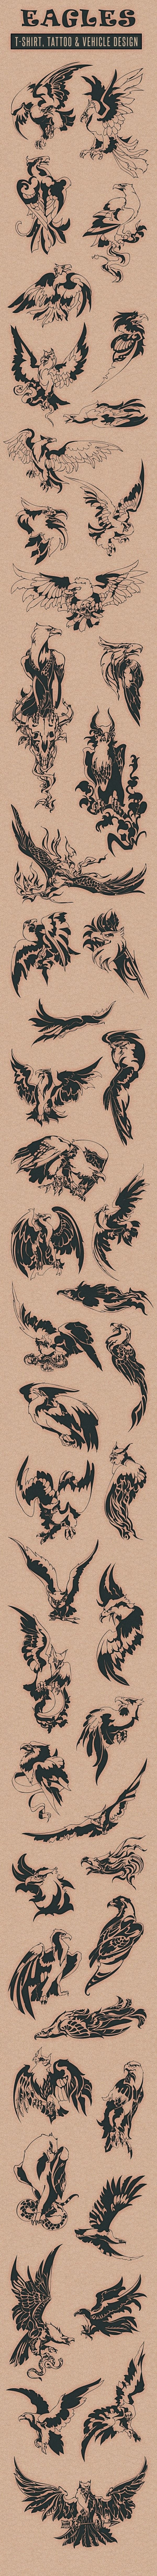 Eagles by Nhat Tien, via Behance